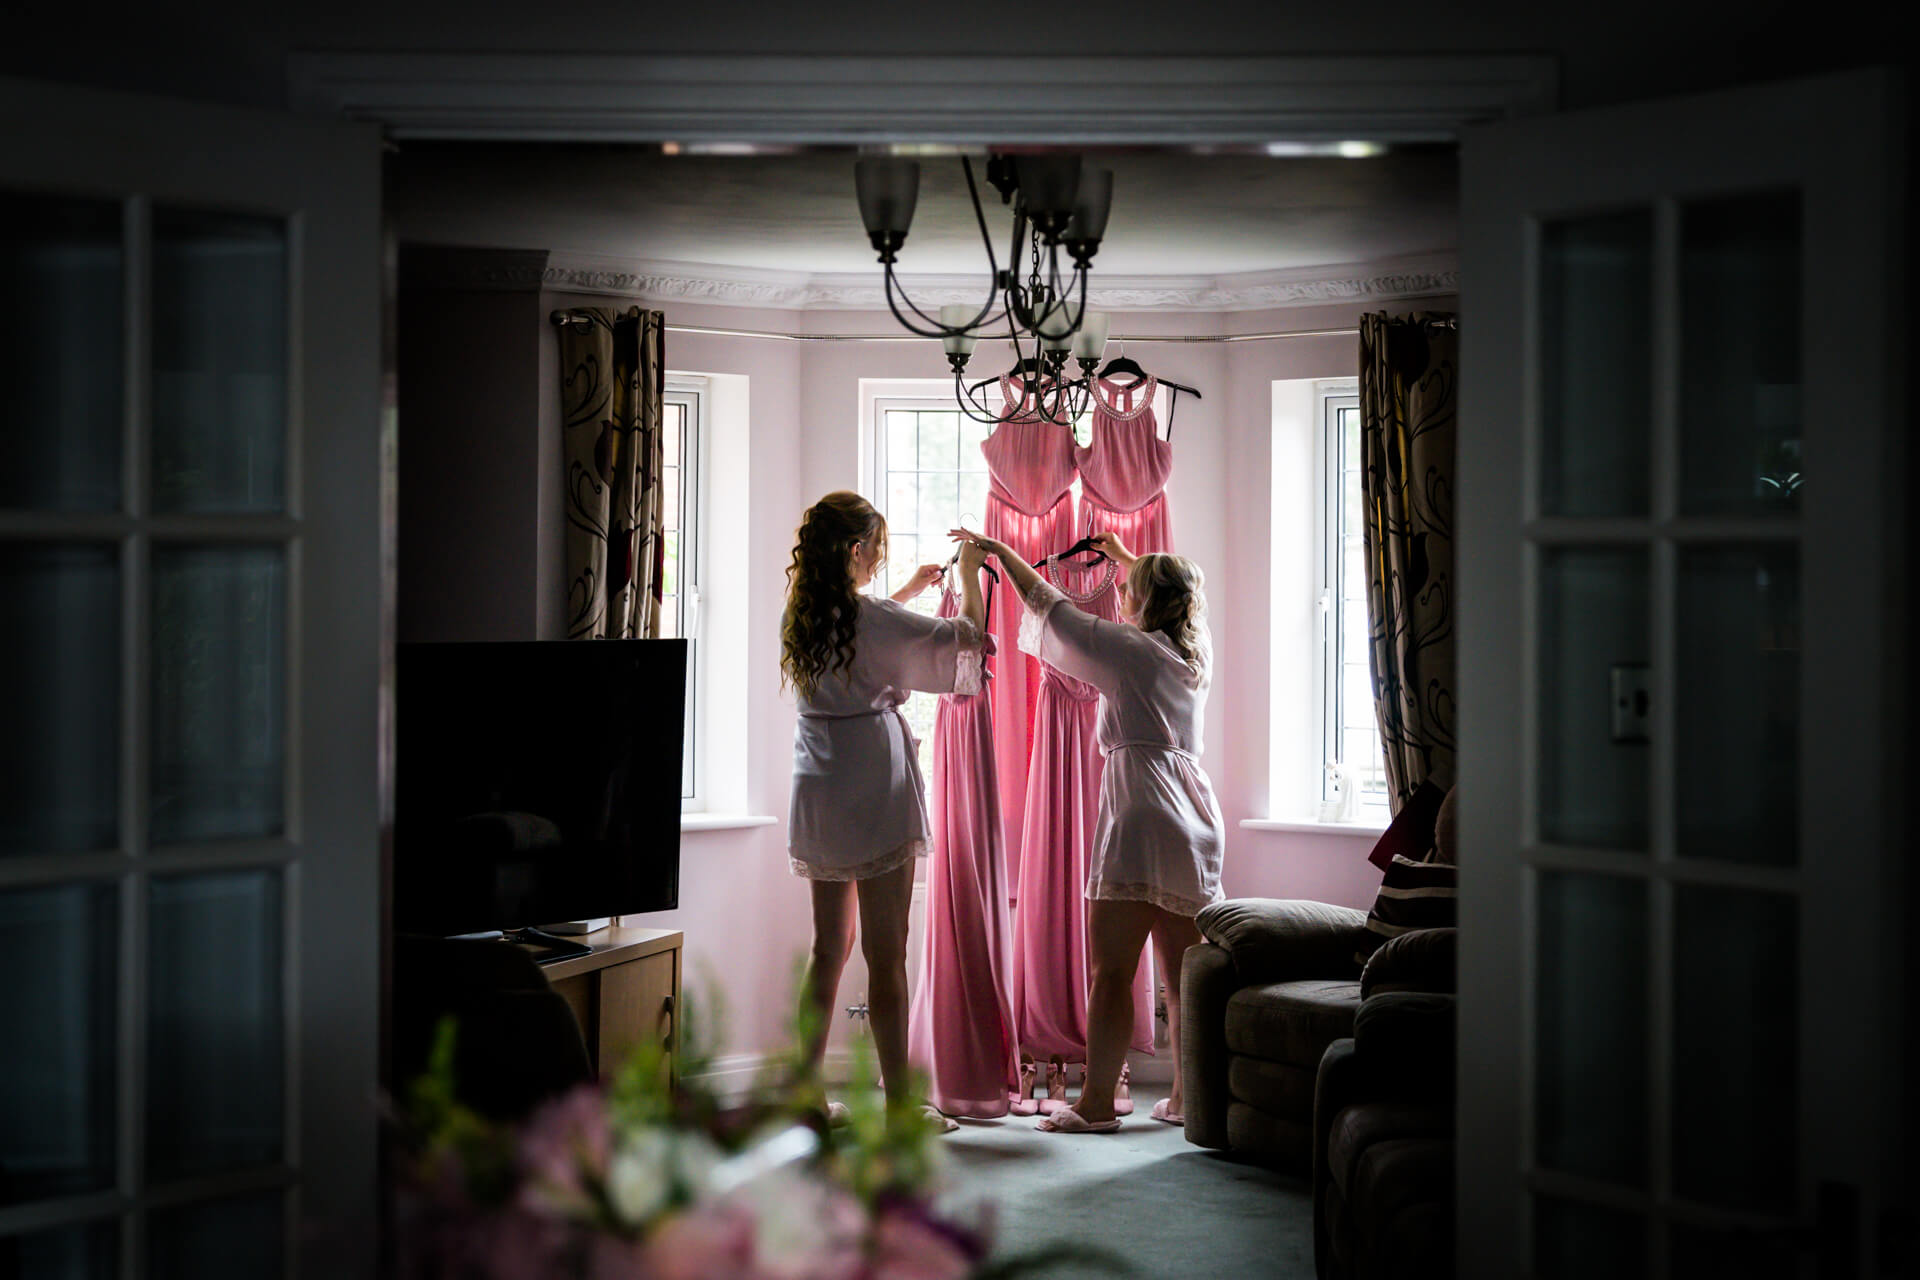 bridesmaids hanging the dresses in a window